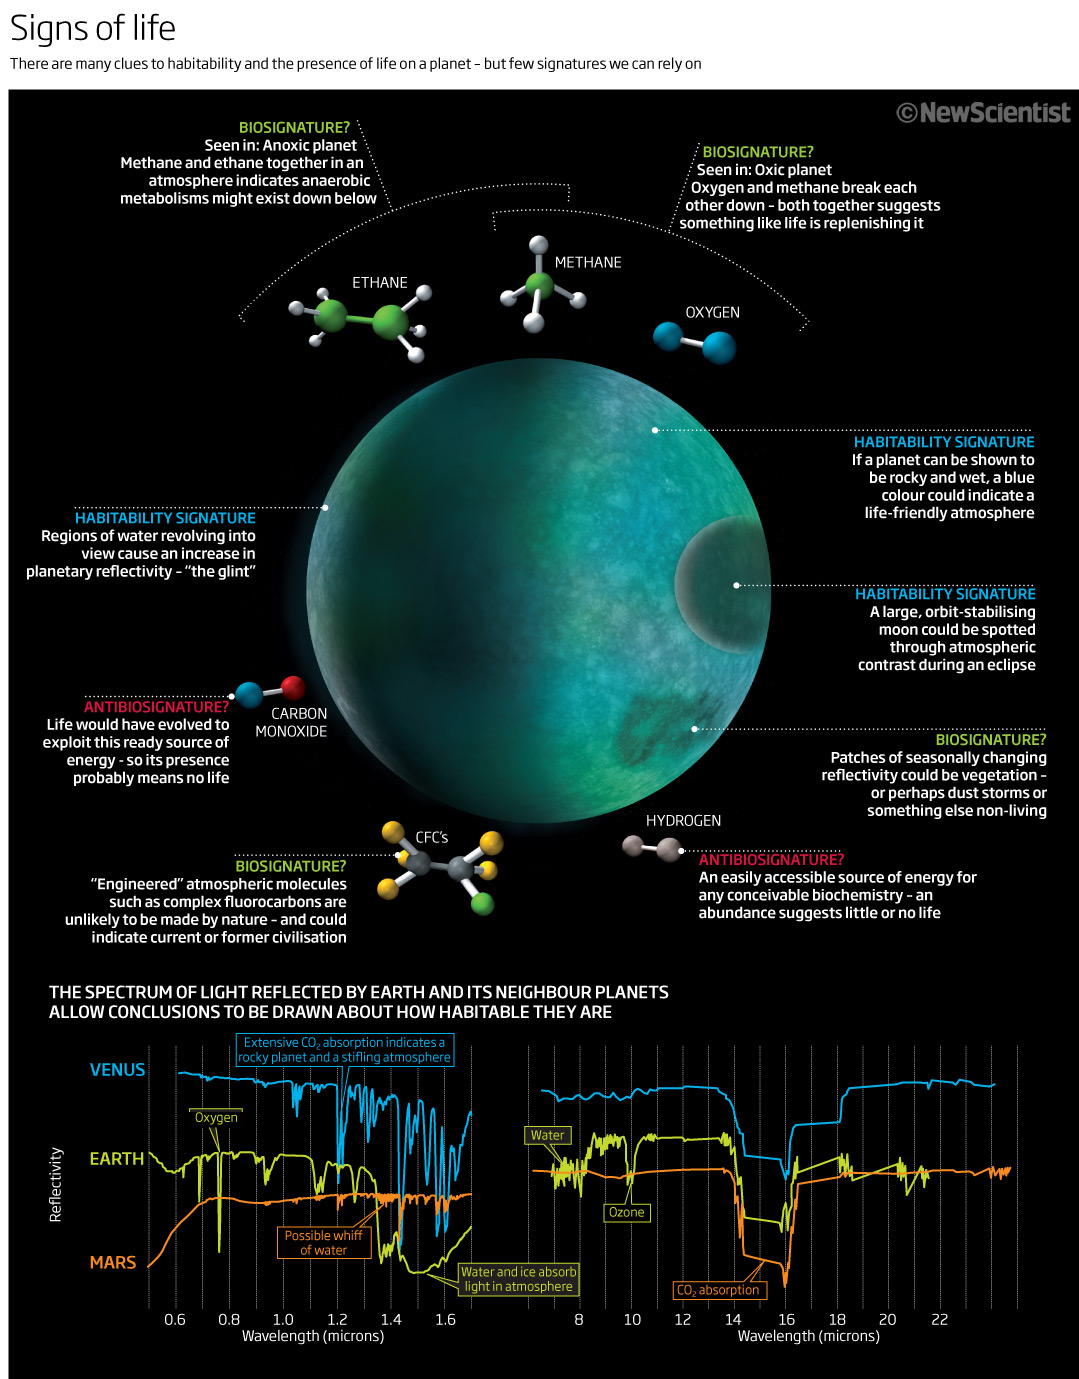 Looking for signs of life on other planets